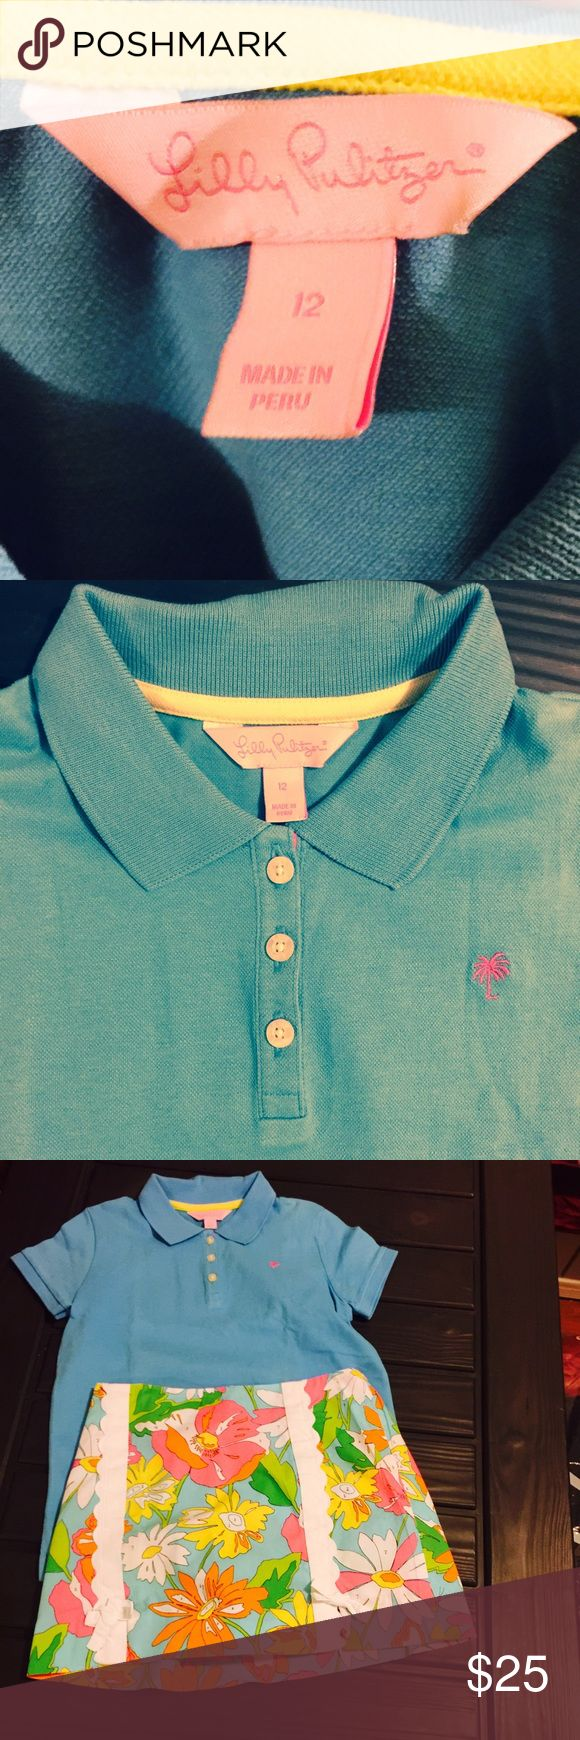 Lilly pulitzer polo Lilly pulitzer polo size 12 for  girls ladies XS mint condition new without tagsShort sleeve girls turquoise pique polo style shirt.  Has cute pink and white dot ribbon trim at shirt opening.  Pink Lilly palm tree logo. Smoke free/pet free home. (Shop and feel good about it 😁. Part of the money u spend goes to Purple Heart Foundation 💜) Lilly Pulitzer Shirts & Tops Polos